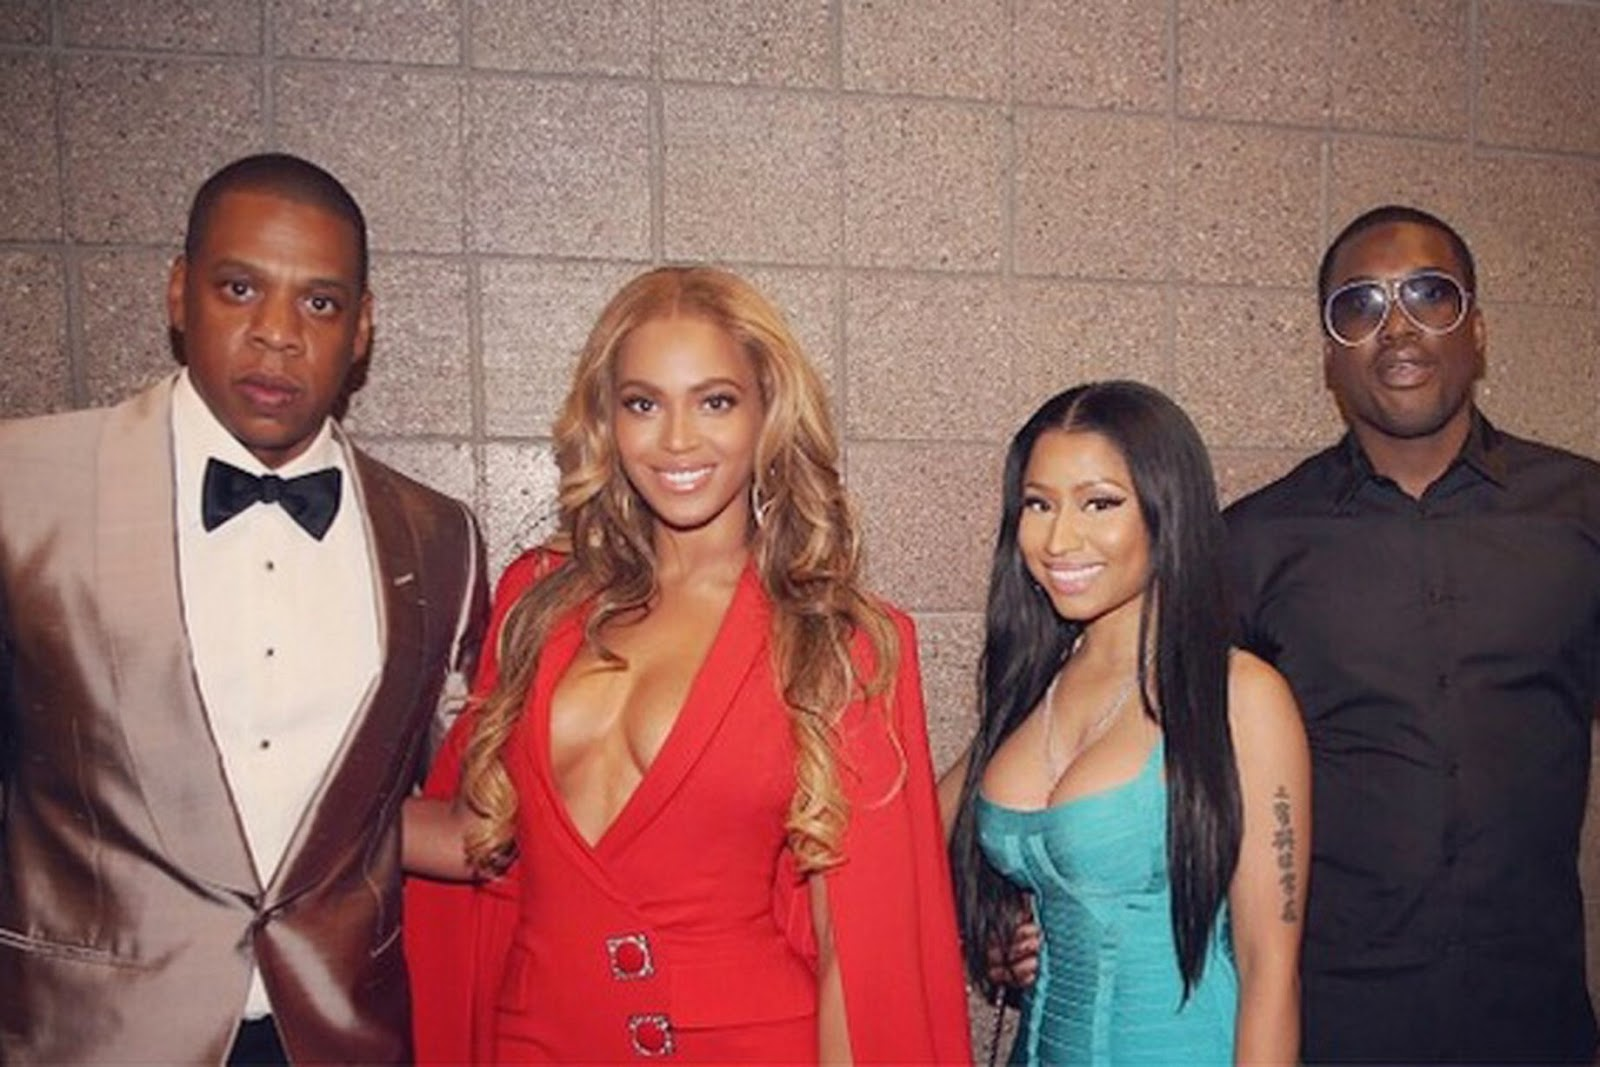 Beyonce, Jay Z and Nicki Minaj at Mayweather VS Pacquiao